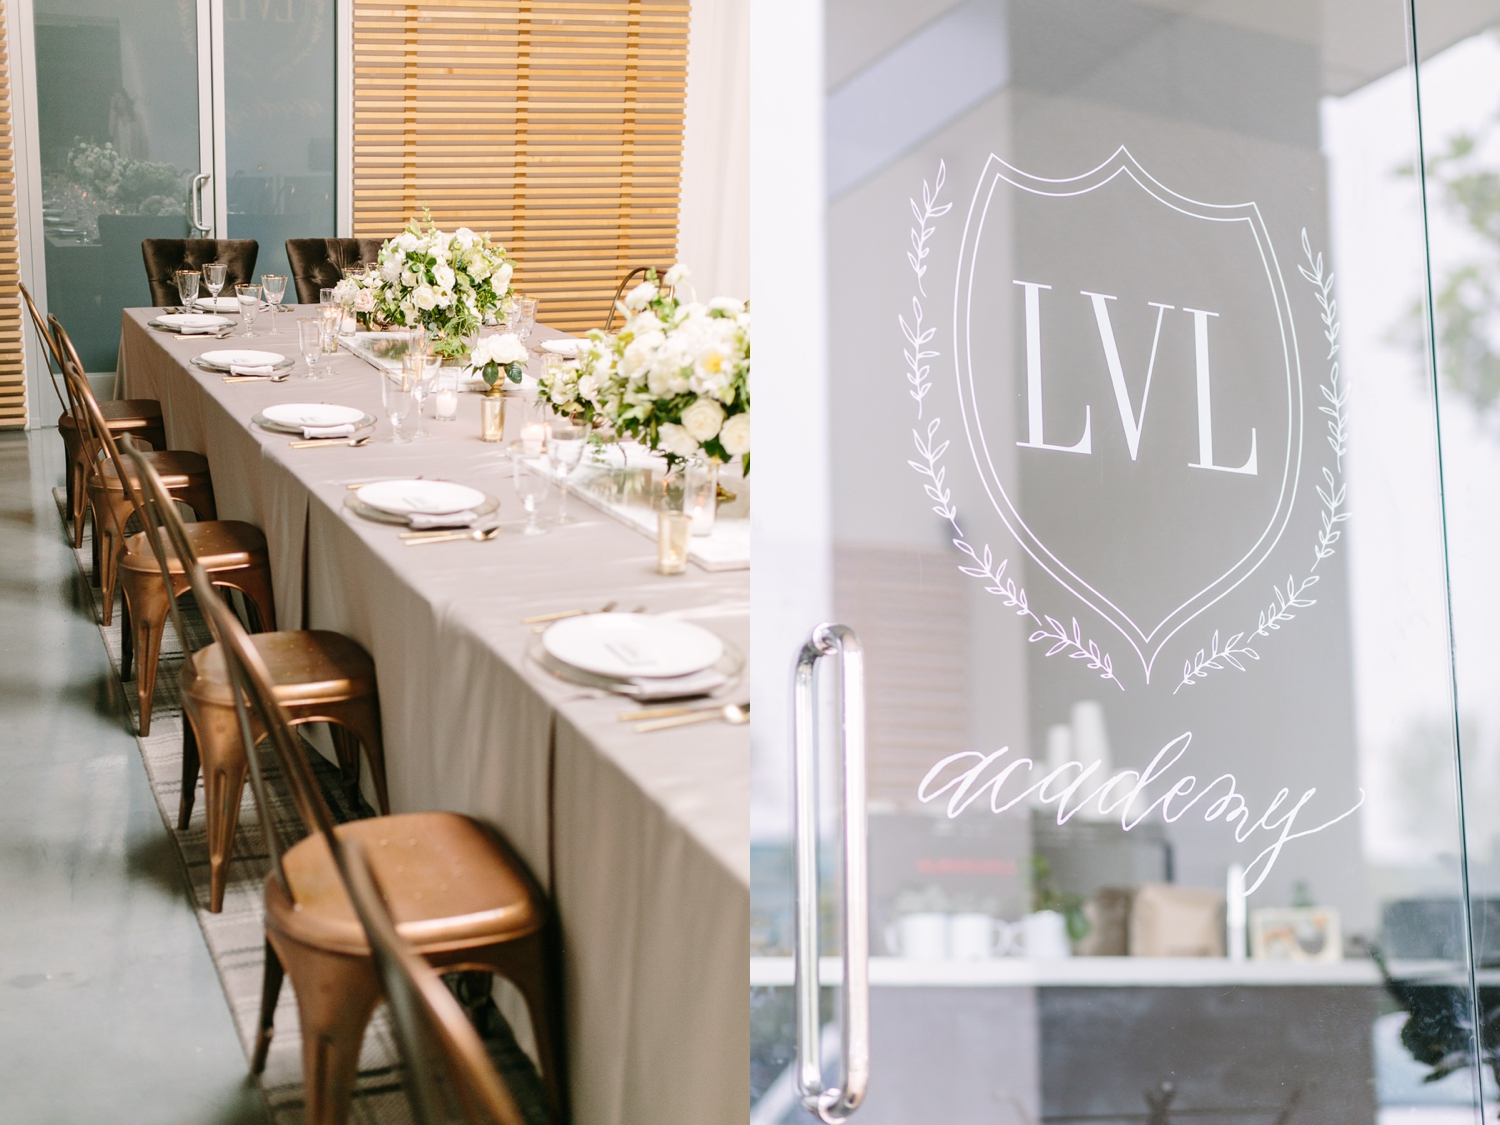 LVL Weddings and Events LVL Academy